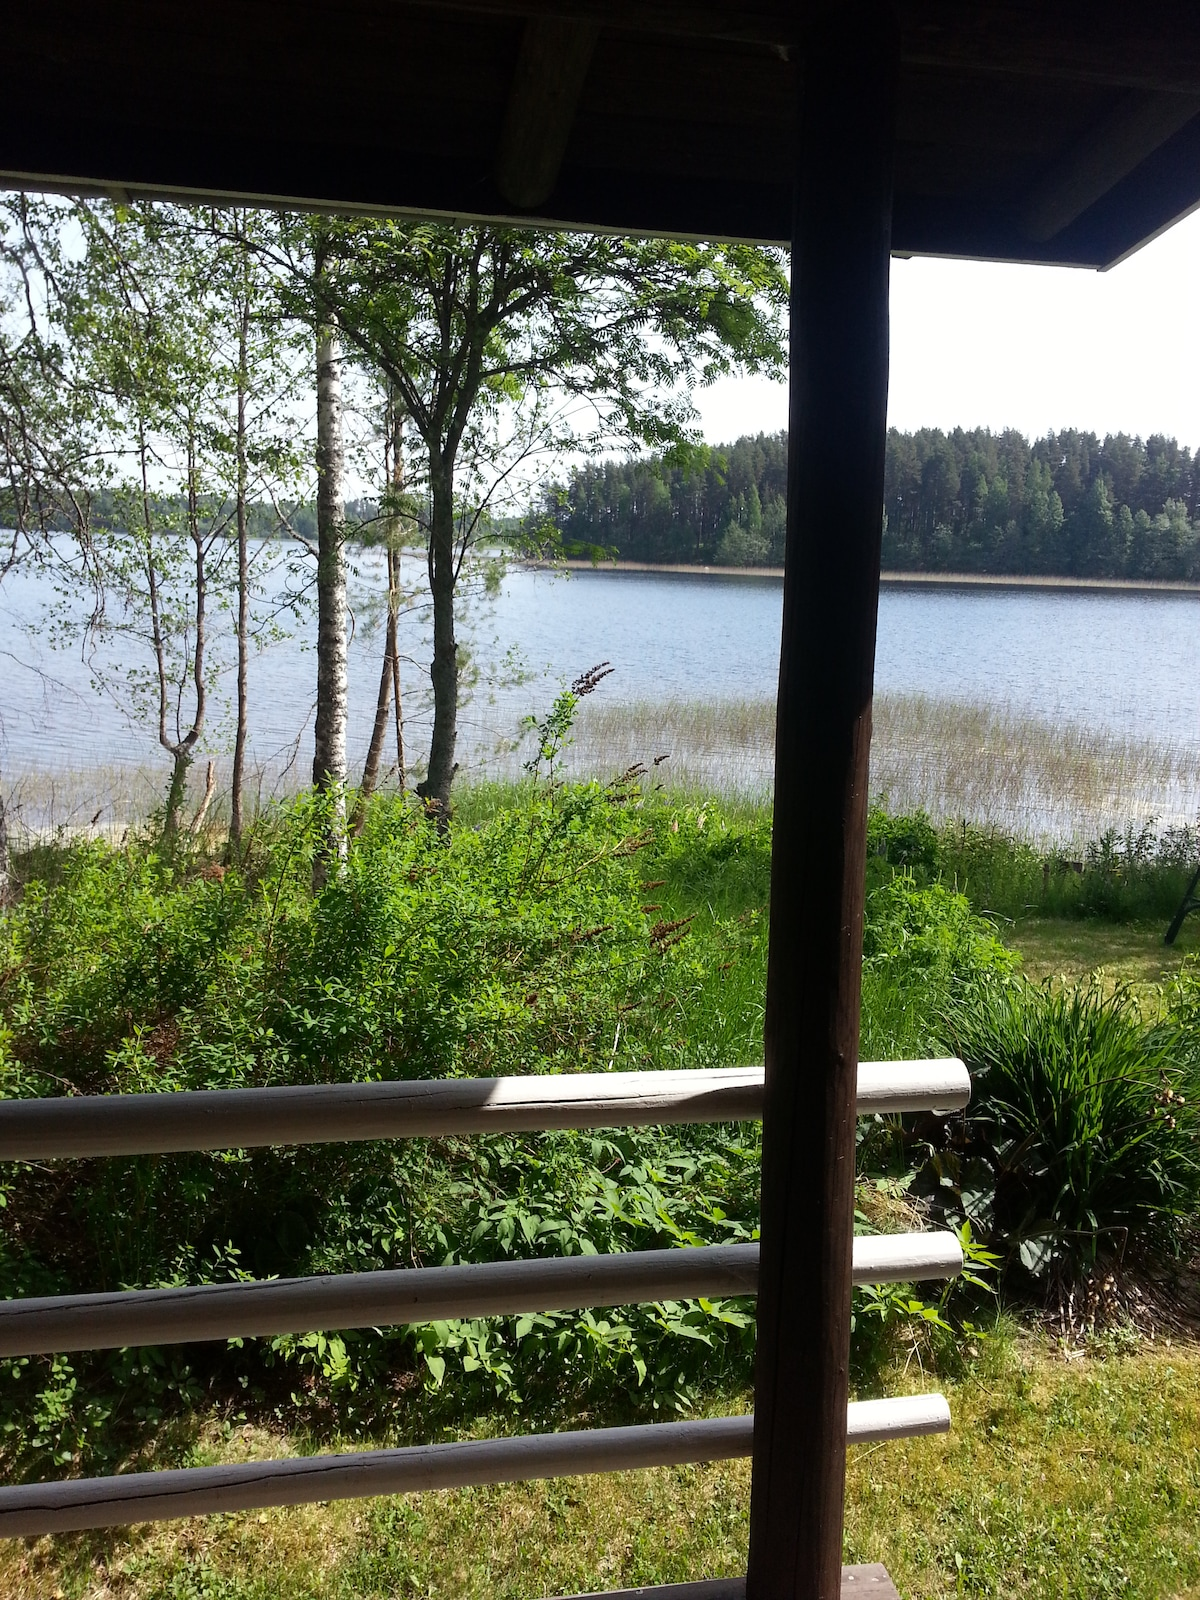 The view from the porch of the cabin